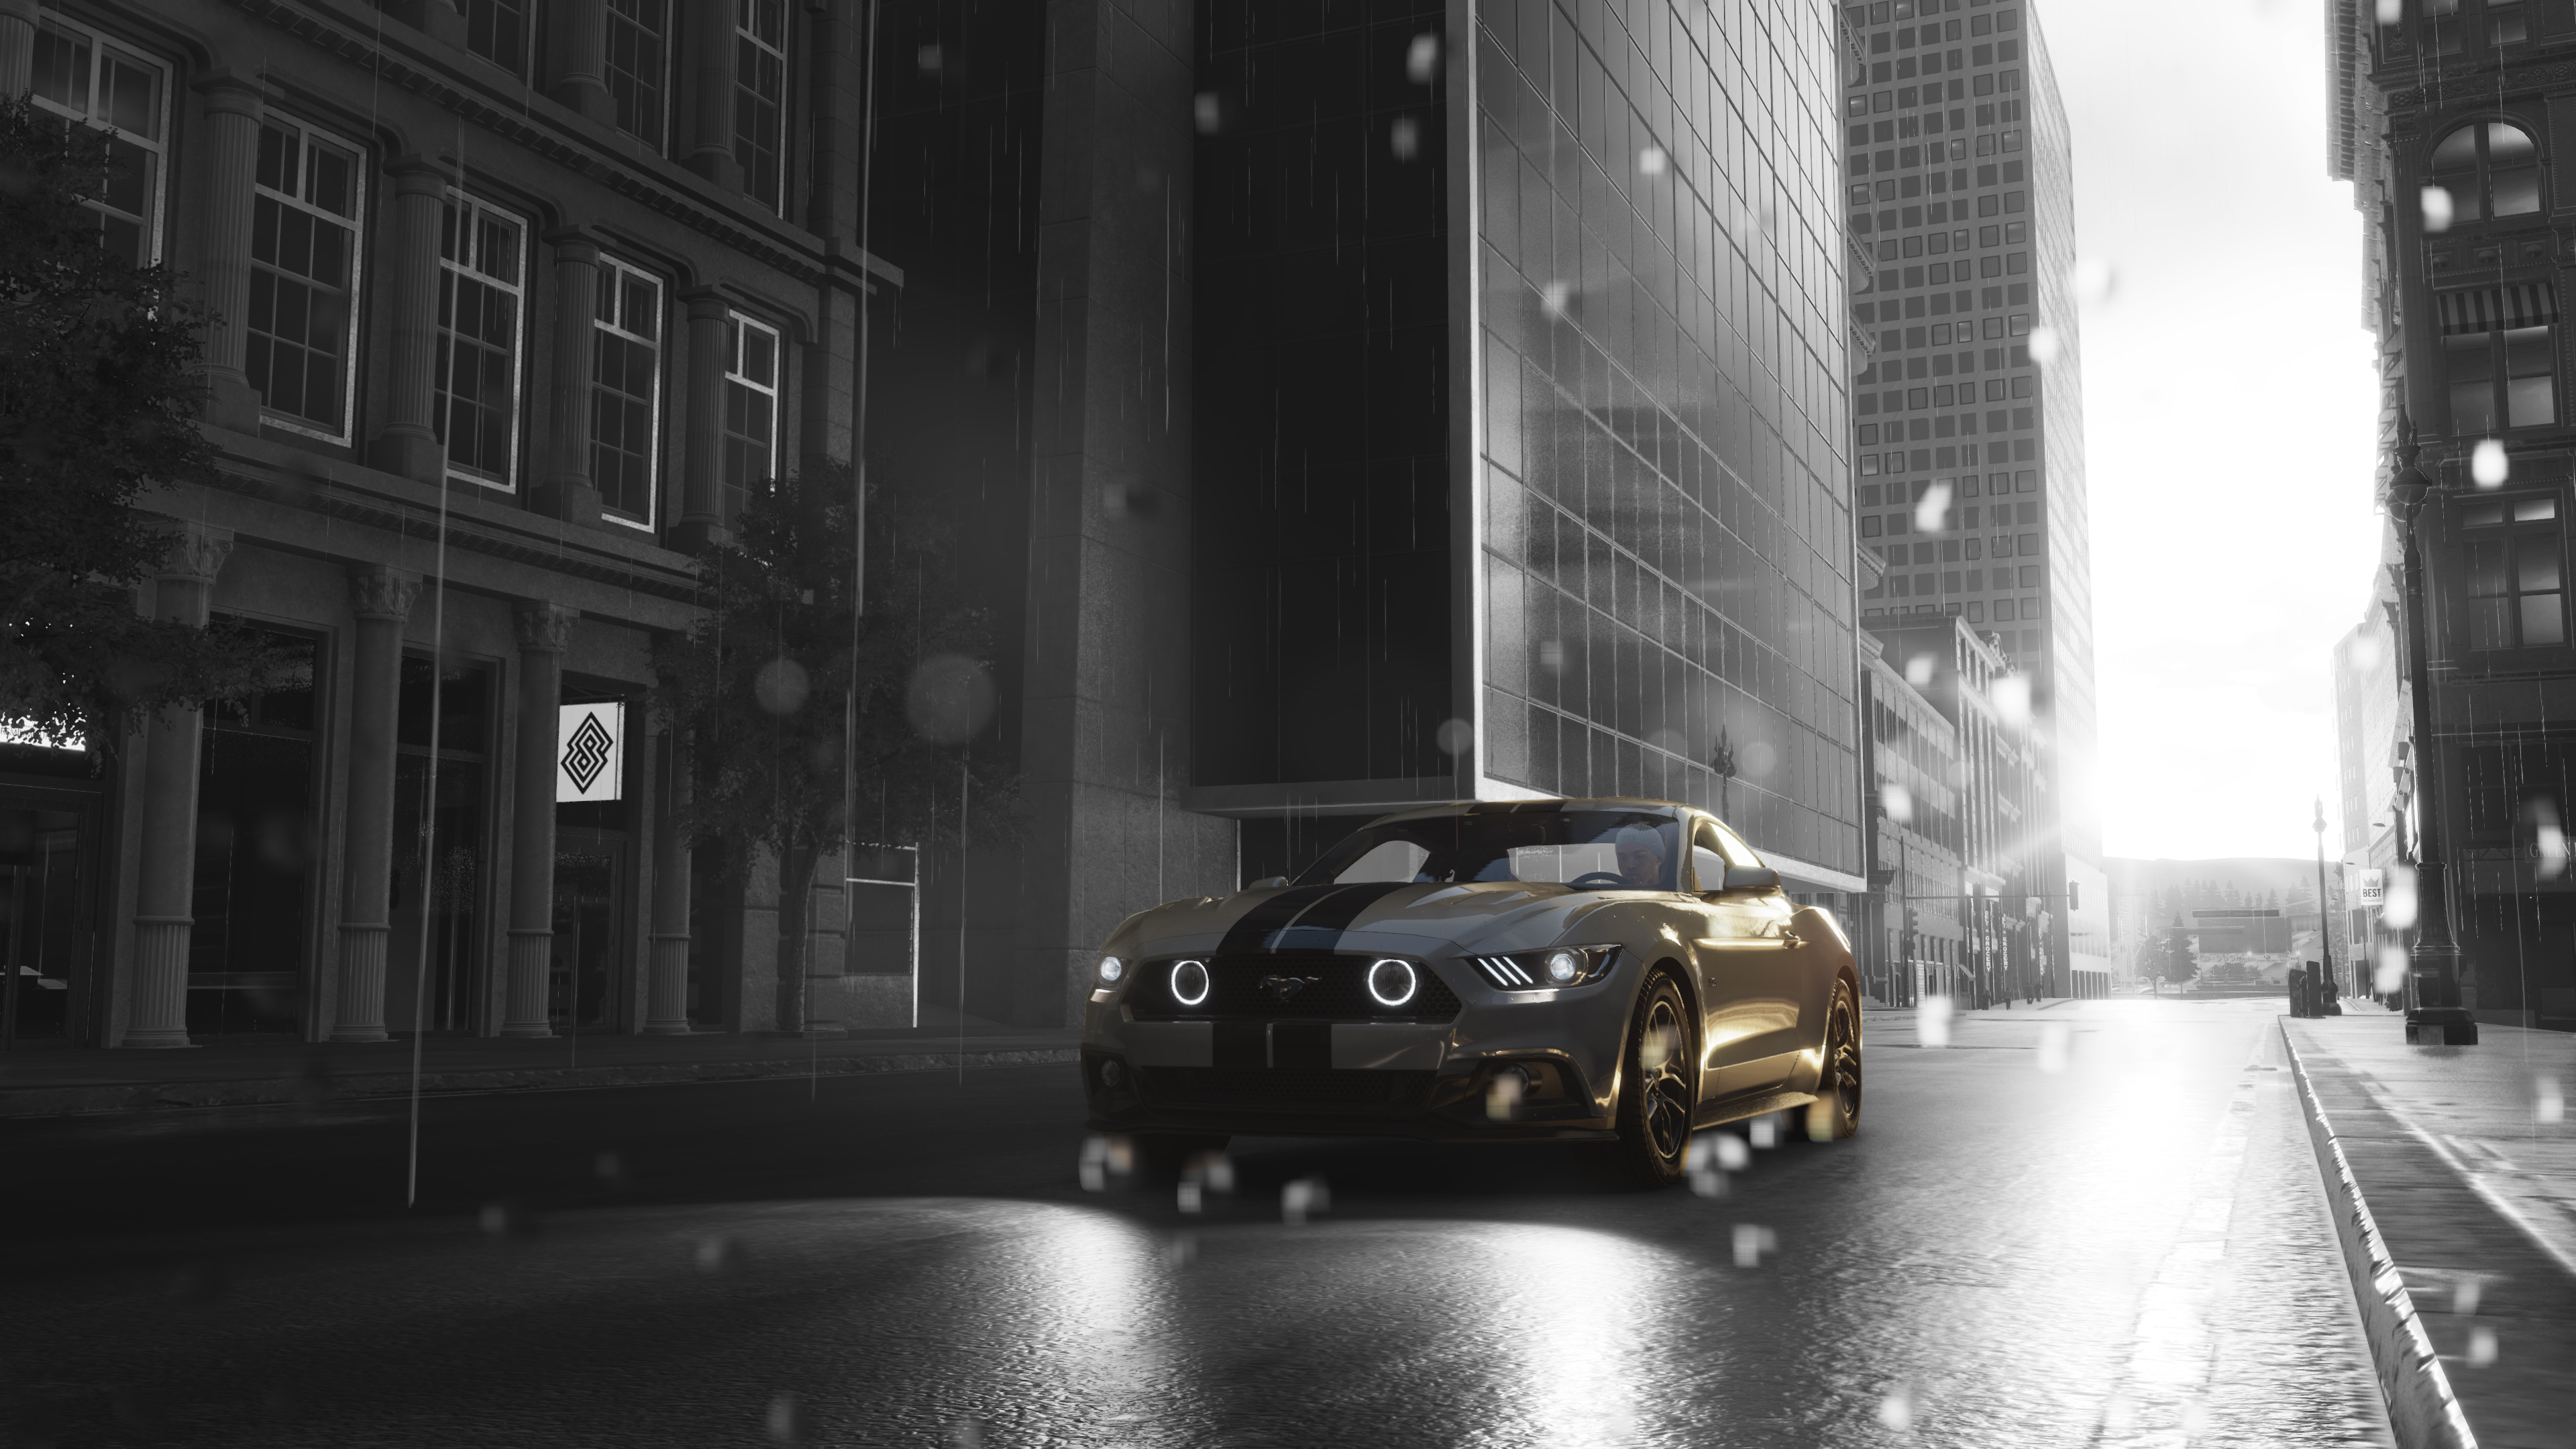 the crew 2 ford 4k 1550510382 - The Crew 2 Ford 4k - xbox games wallpapers, the crew wallpapers, the crew 2 wallpapers, ps games wallpapers, pc games wallpapers, hd-wallpapers, games wallpapers, 4k-wallpapers